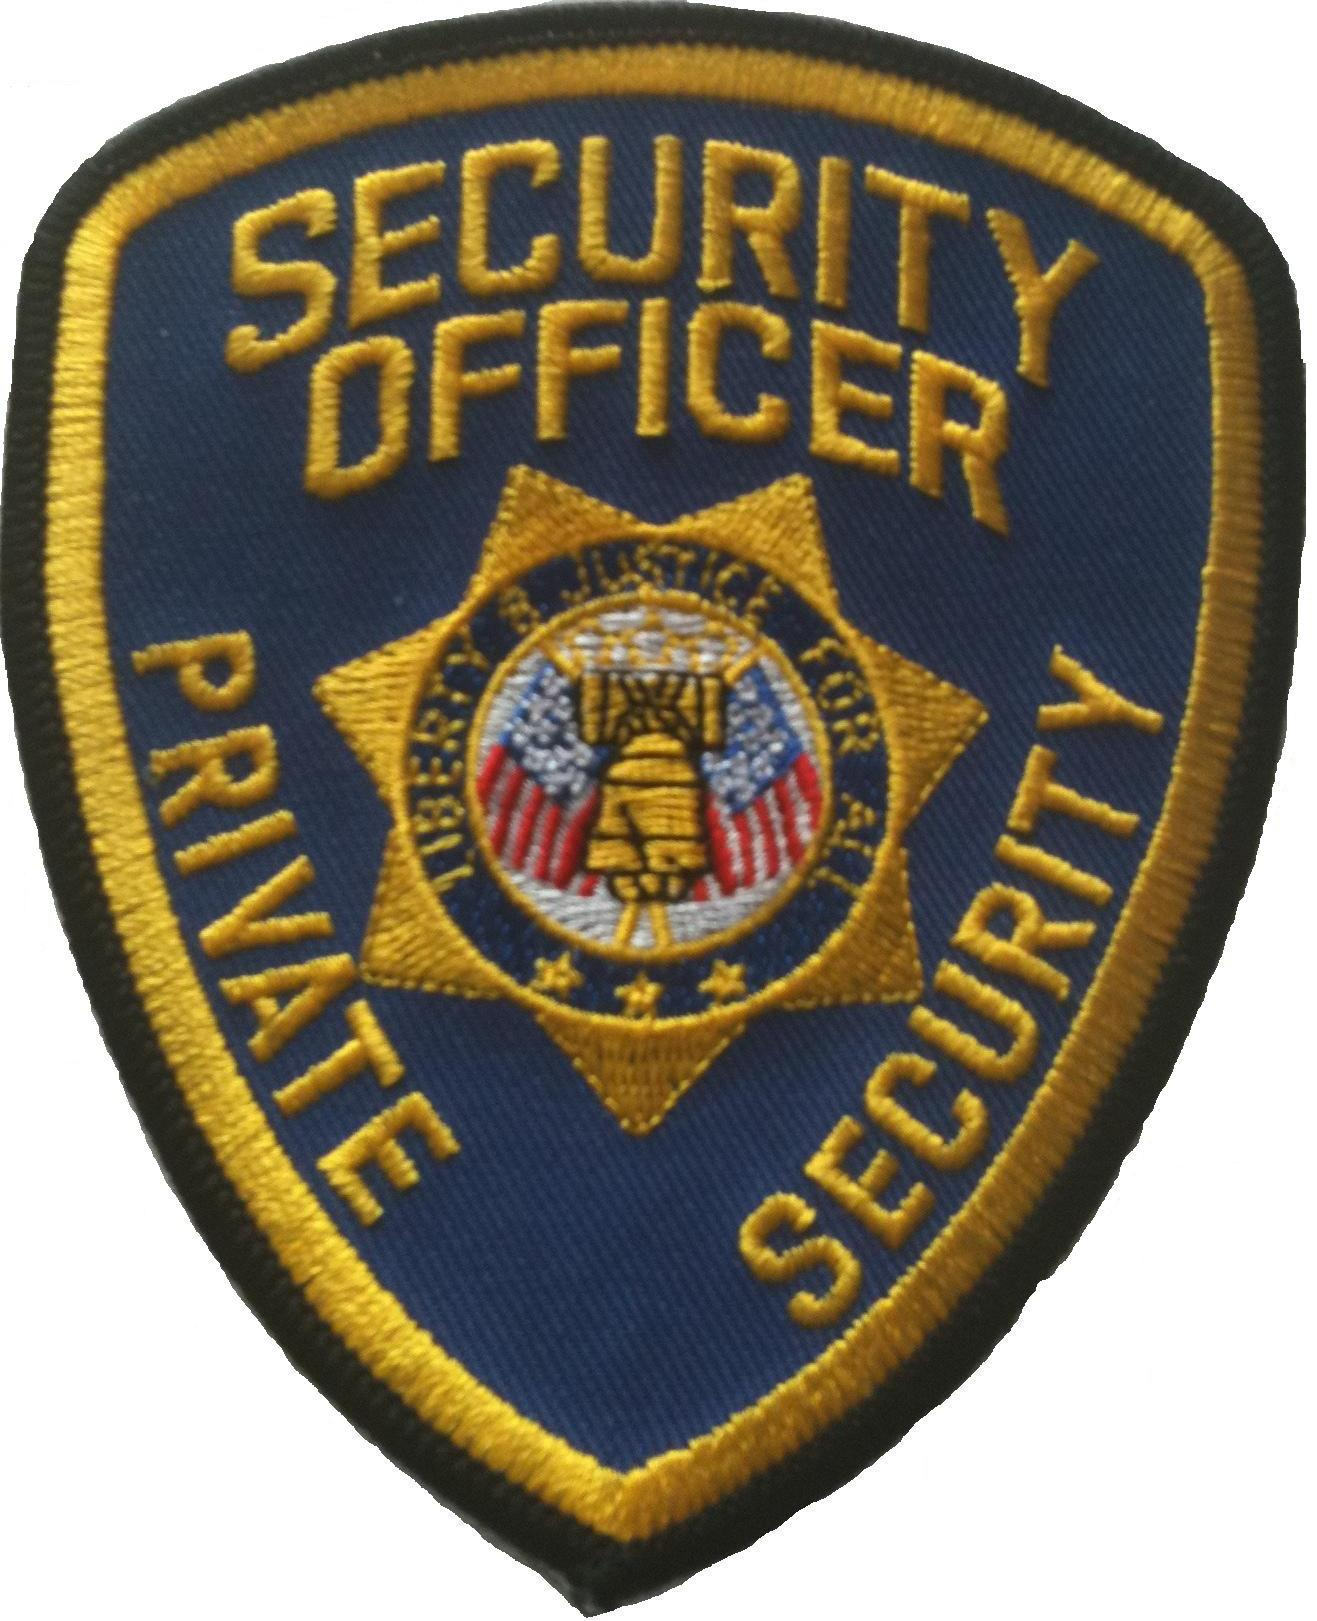 SECURITY OFFICER PRIVATE SECURITY / GOLD ON BLUE